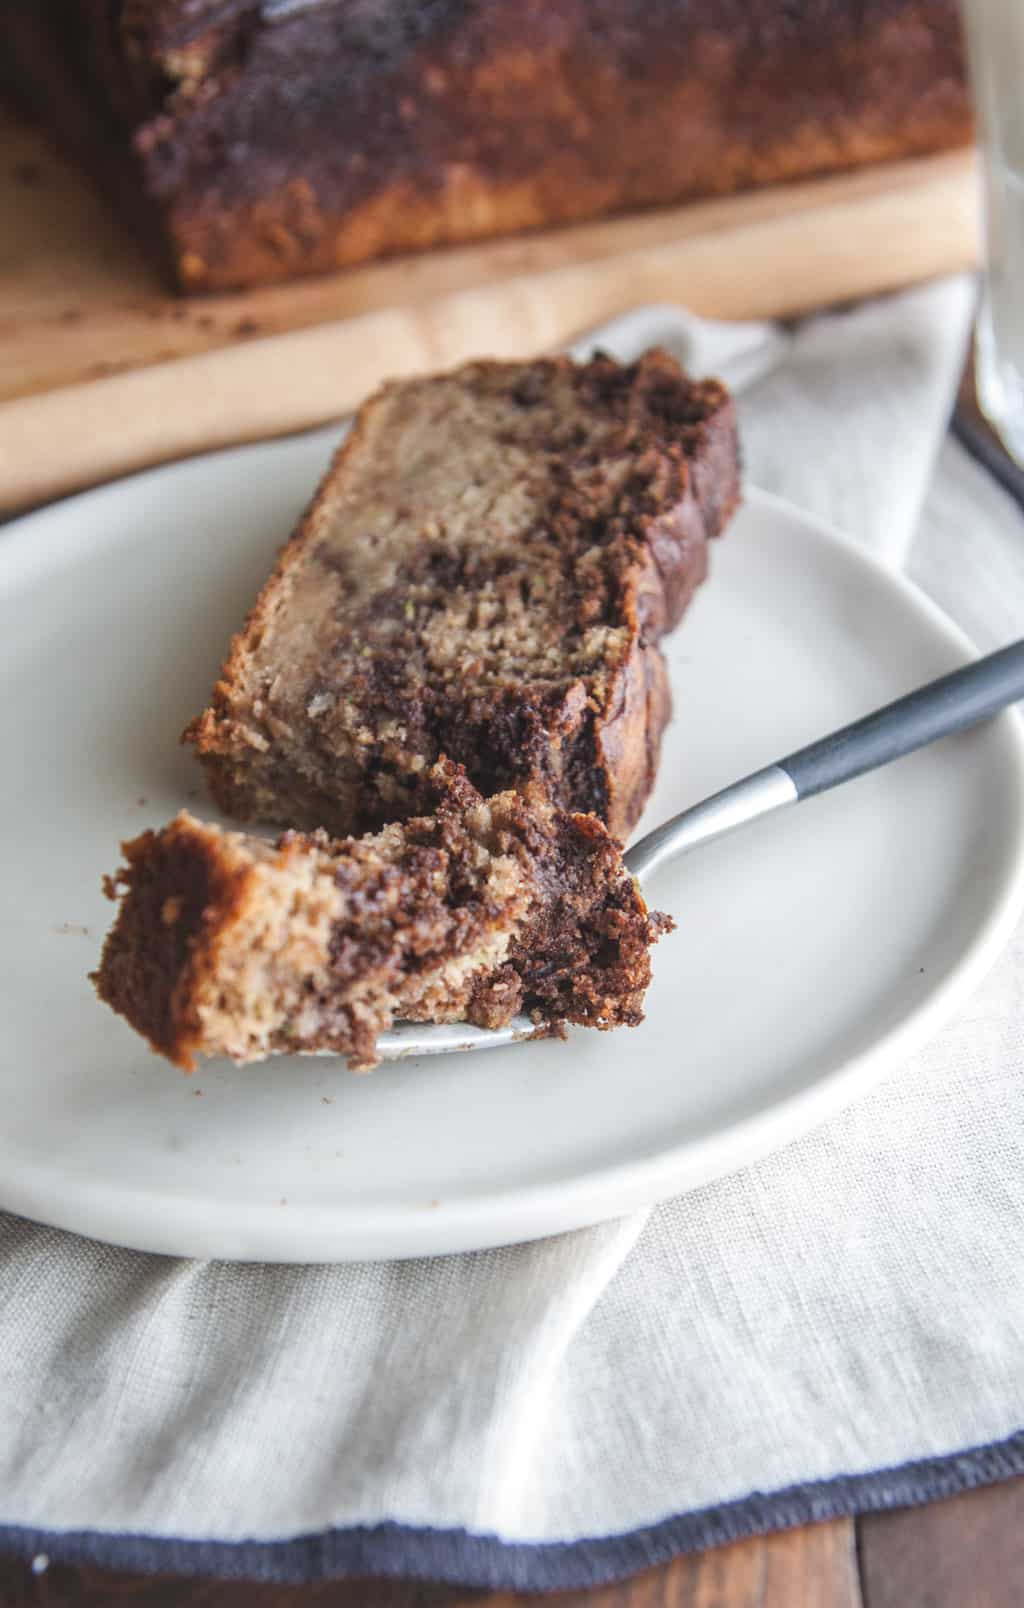 Zucchini banana chocolate loaf from @sweetphi